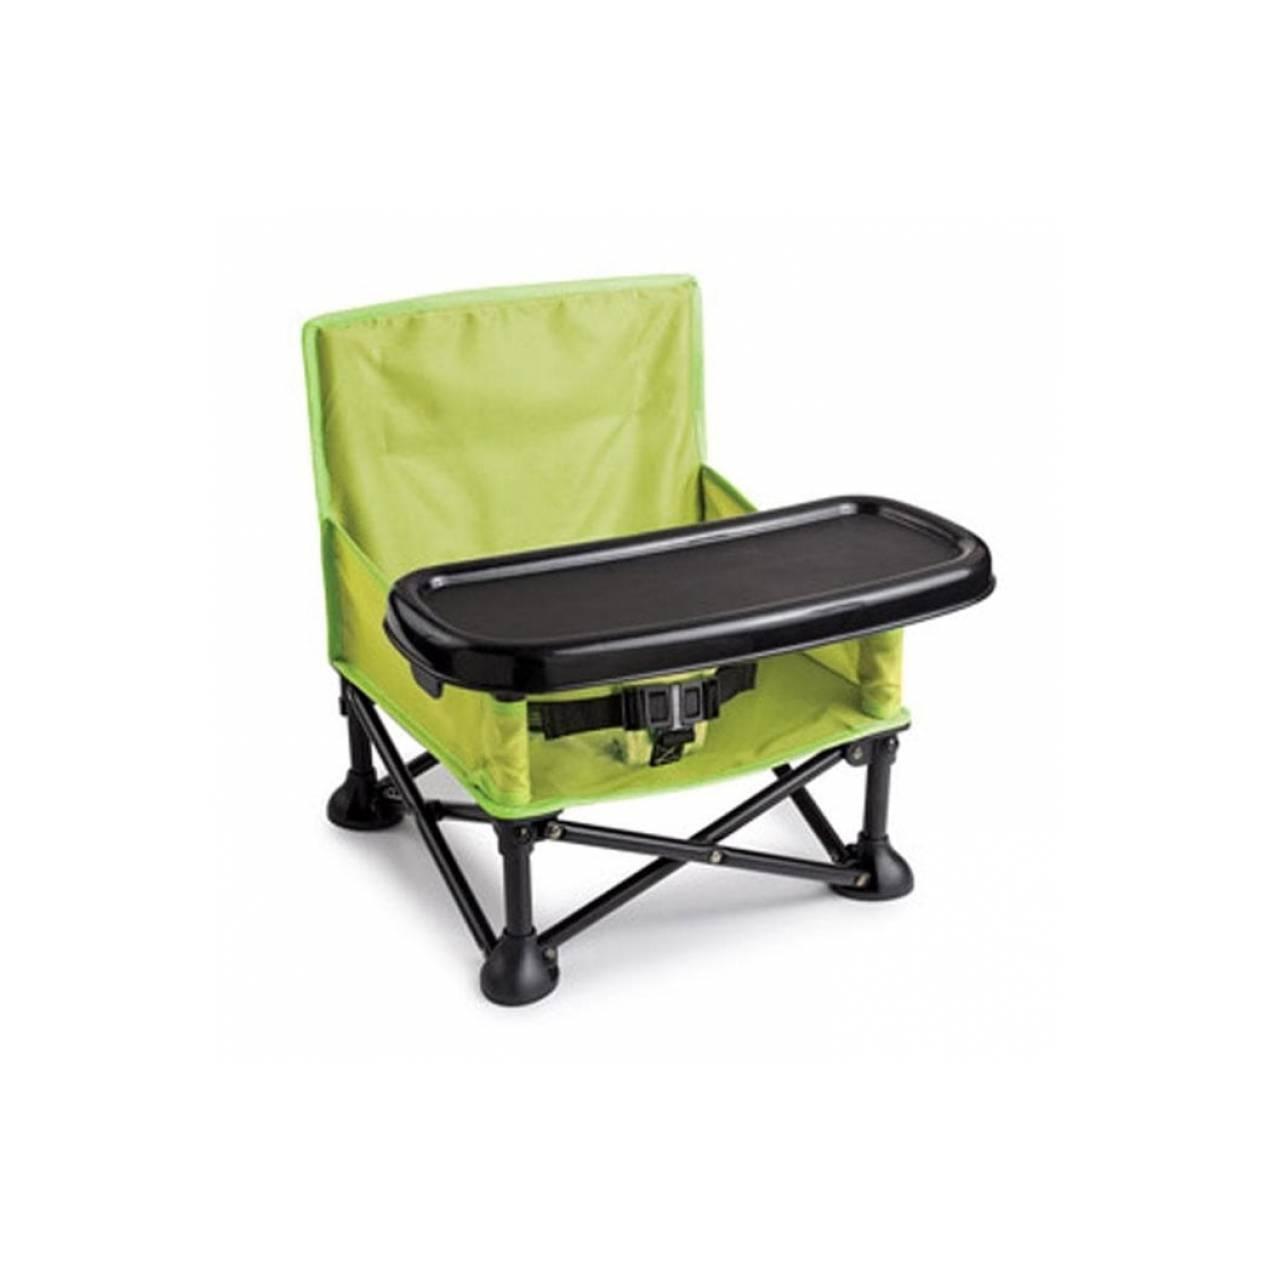 Baby Chair Summer Pop n' Sit Portable Booster Green 13404